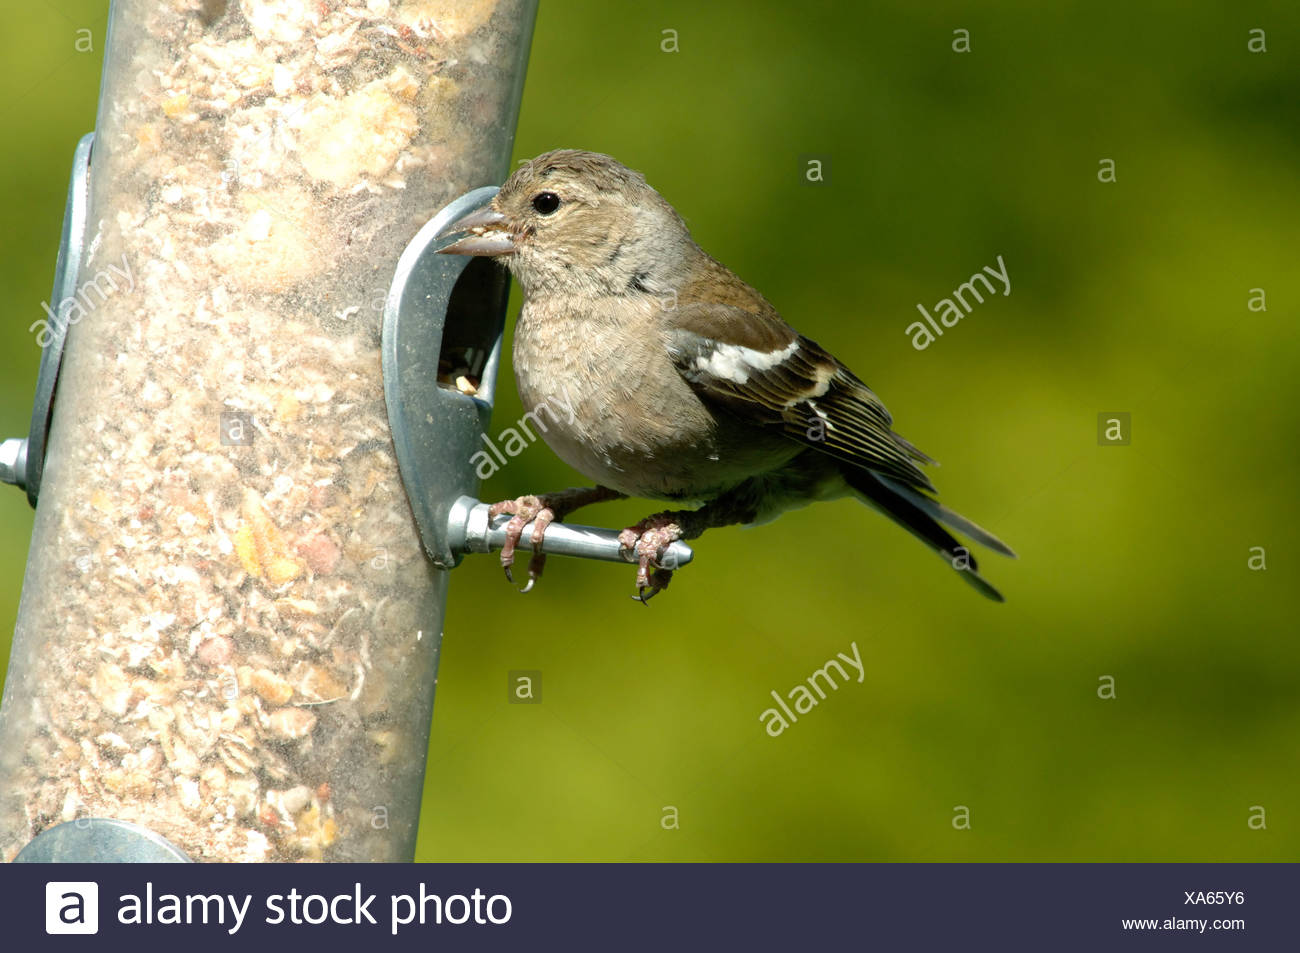 A female chaffinch Fringilla coelebs on a bird seed feeder in summer - Stock Image